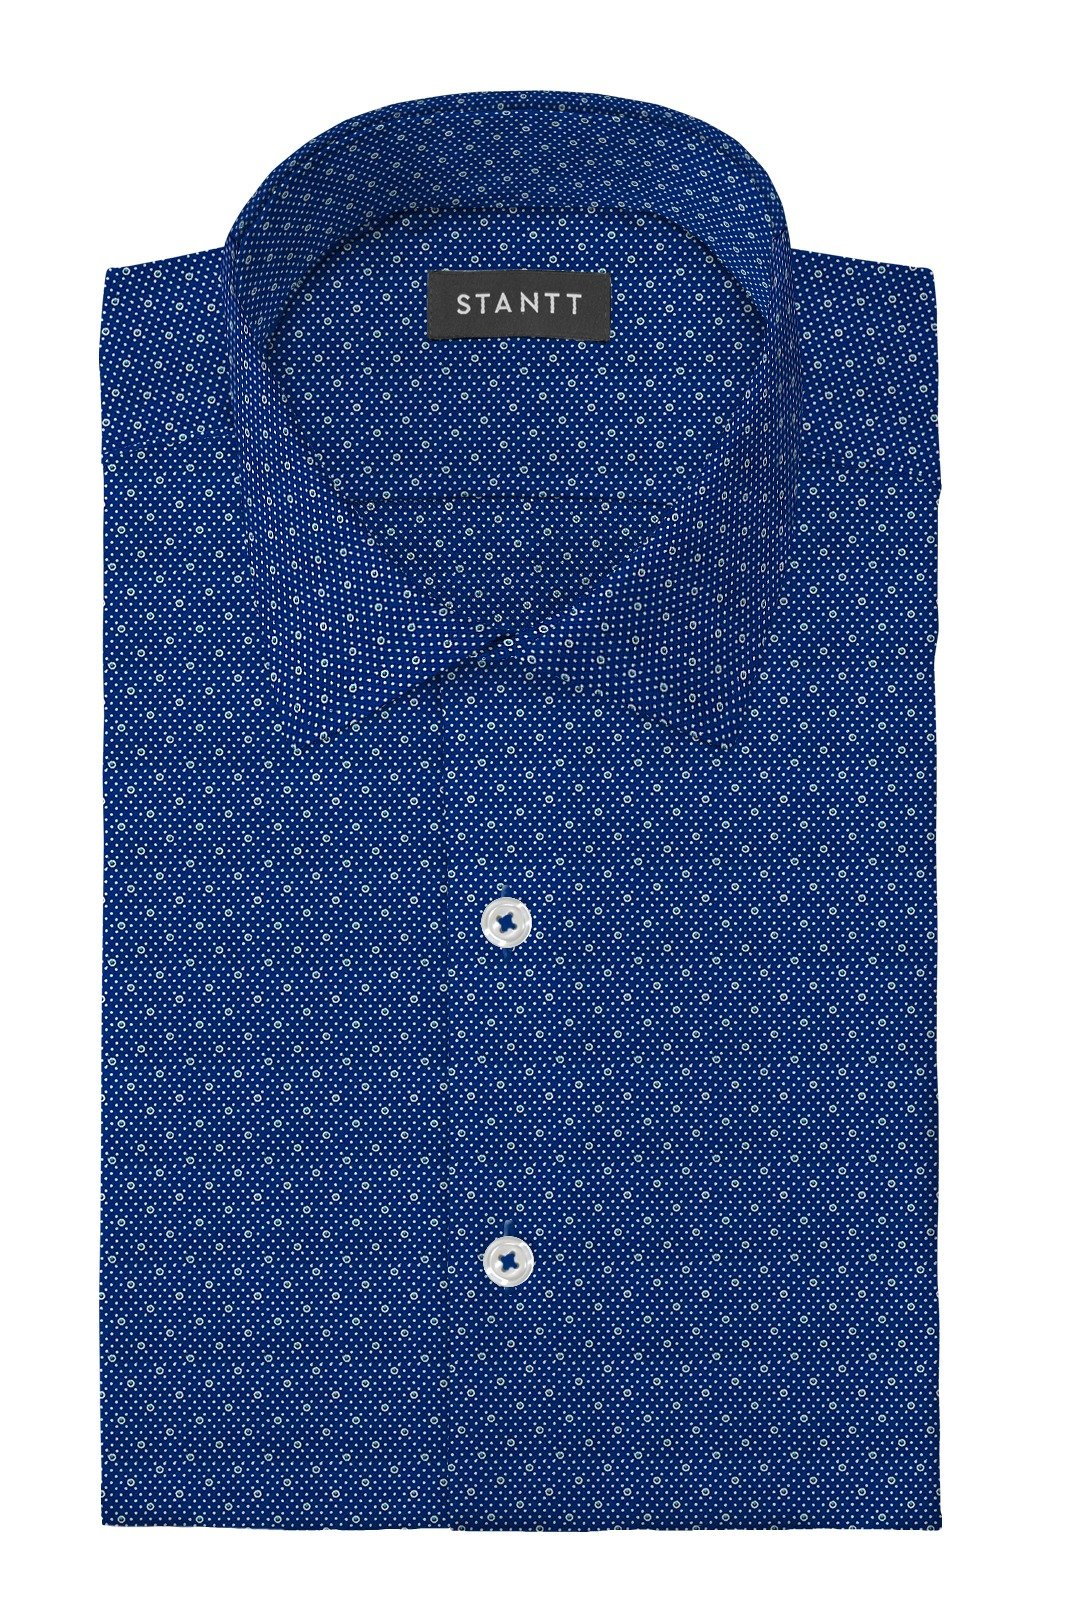 Blue Multi Polka Dot Print: Modified-Spread Collar, French Cuff